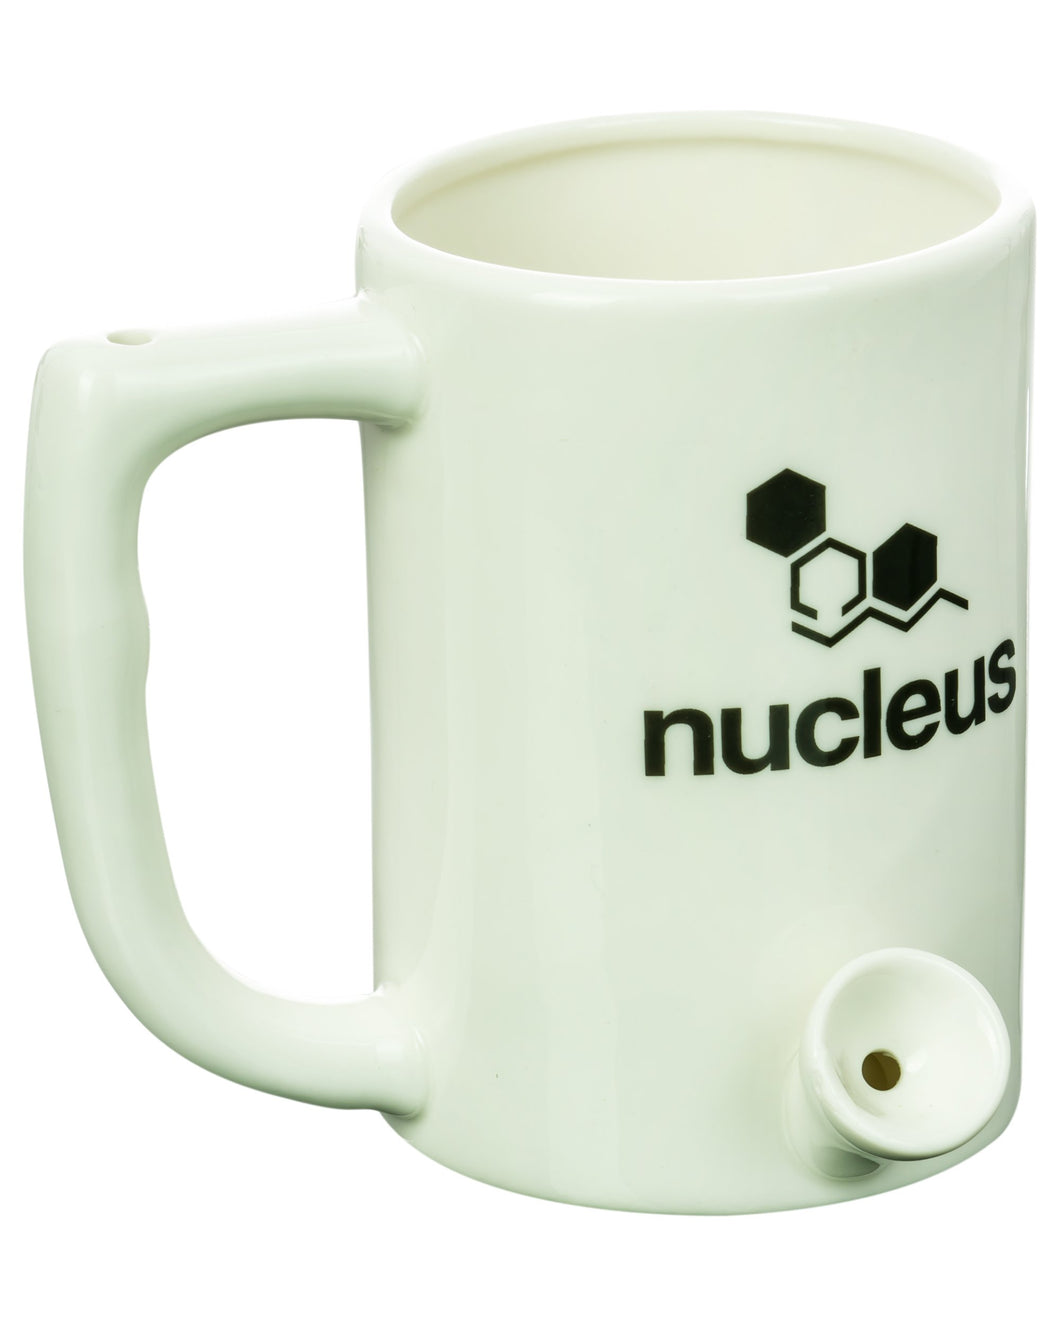 Pipe Mug for $50.00 at Weedcommerce Marketplace